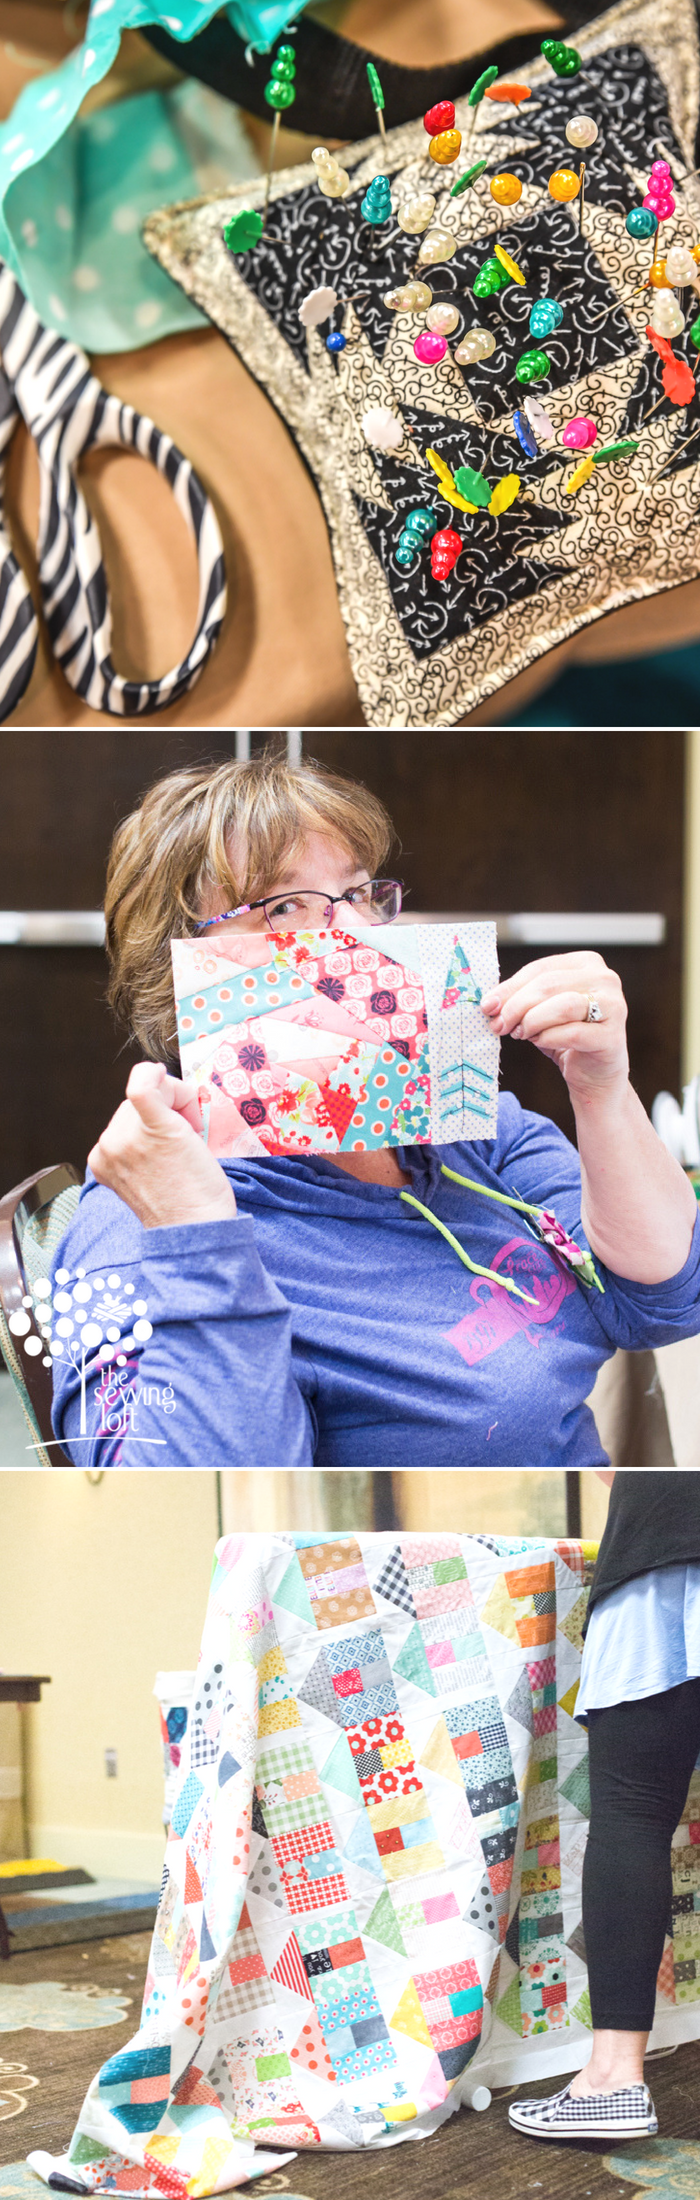 Sew Scrappy Sewing Retreat Projects